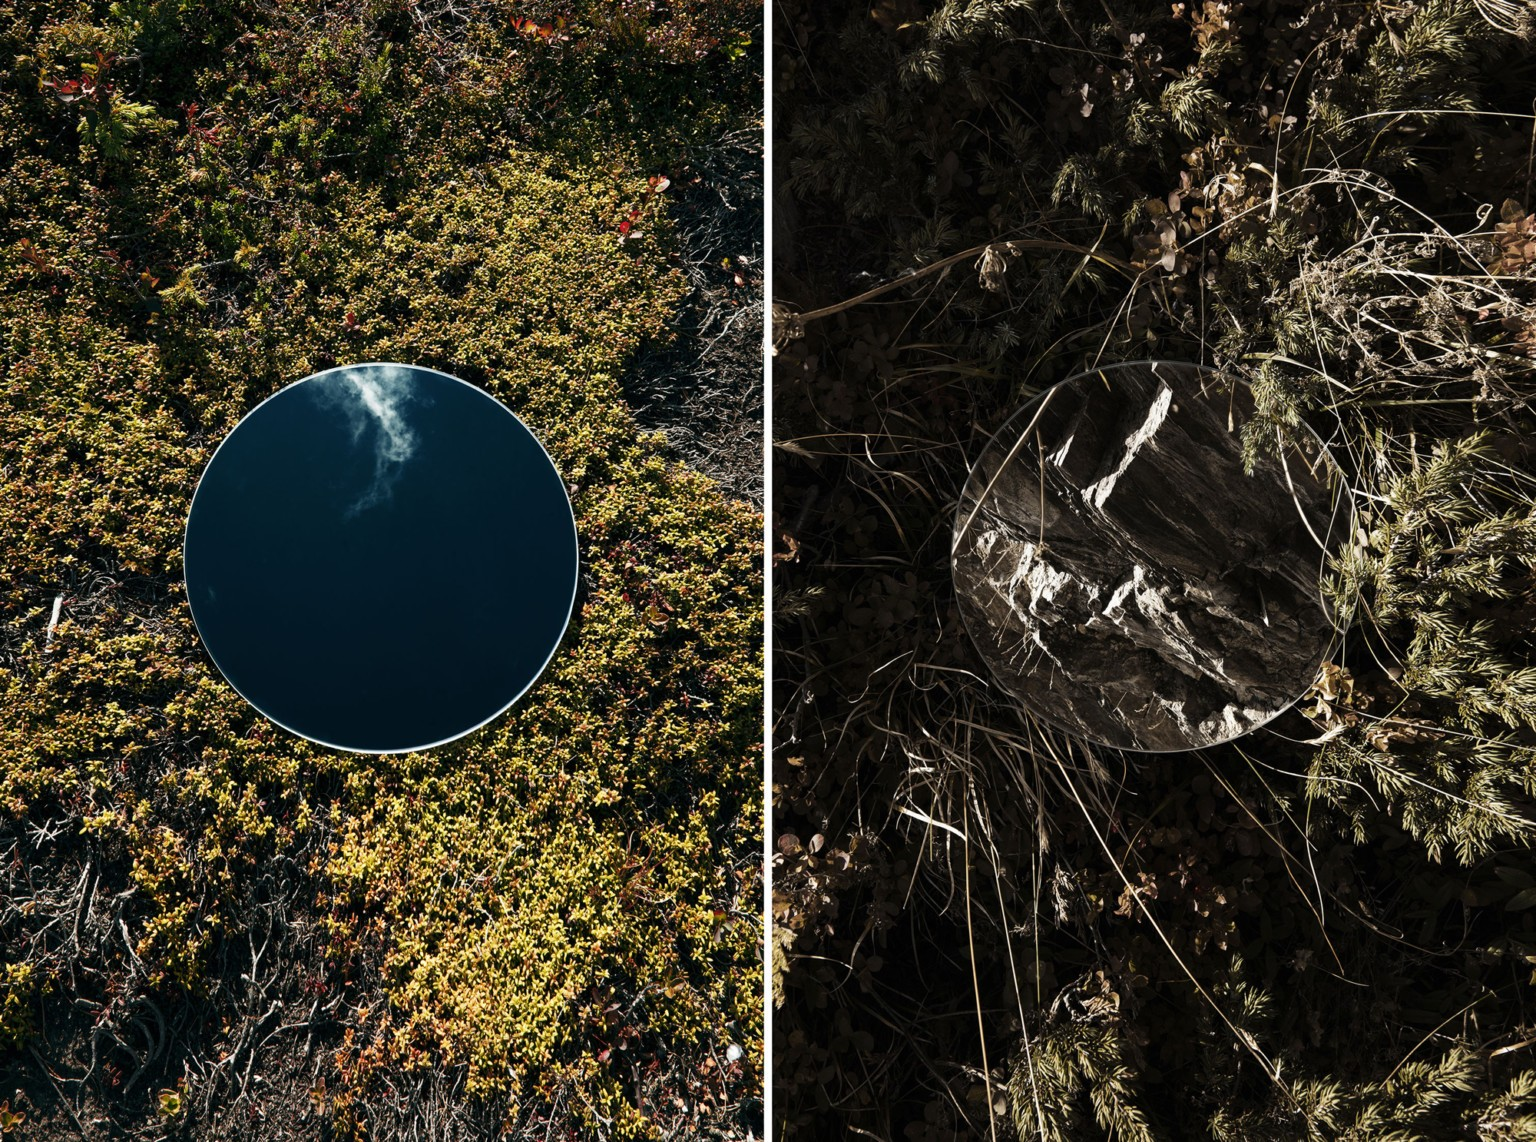 Abstracted Dual Landscapes Created Using Cleverly Placed Mirrors